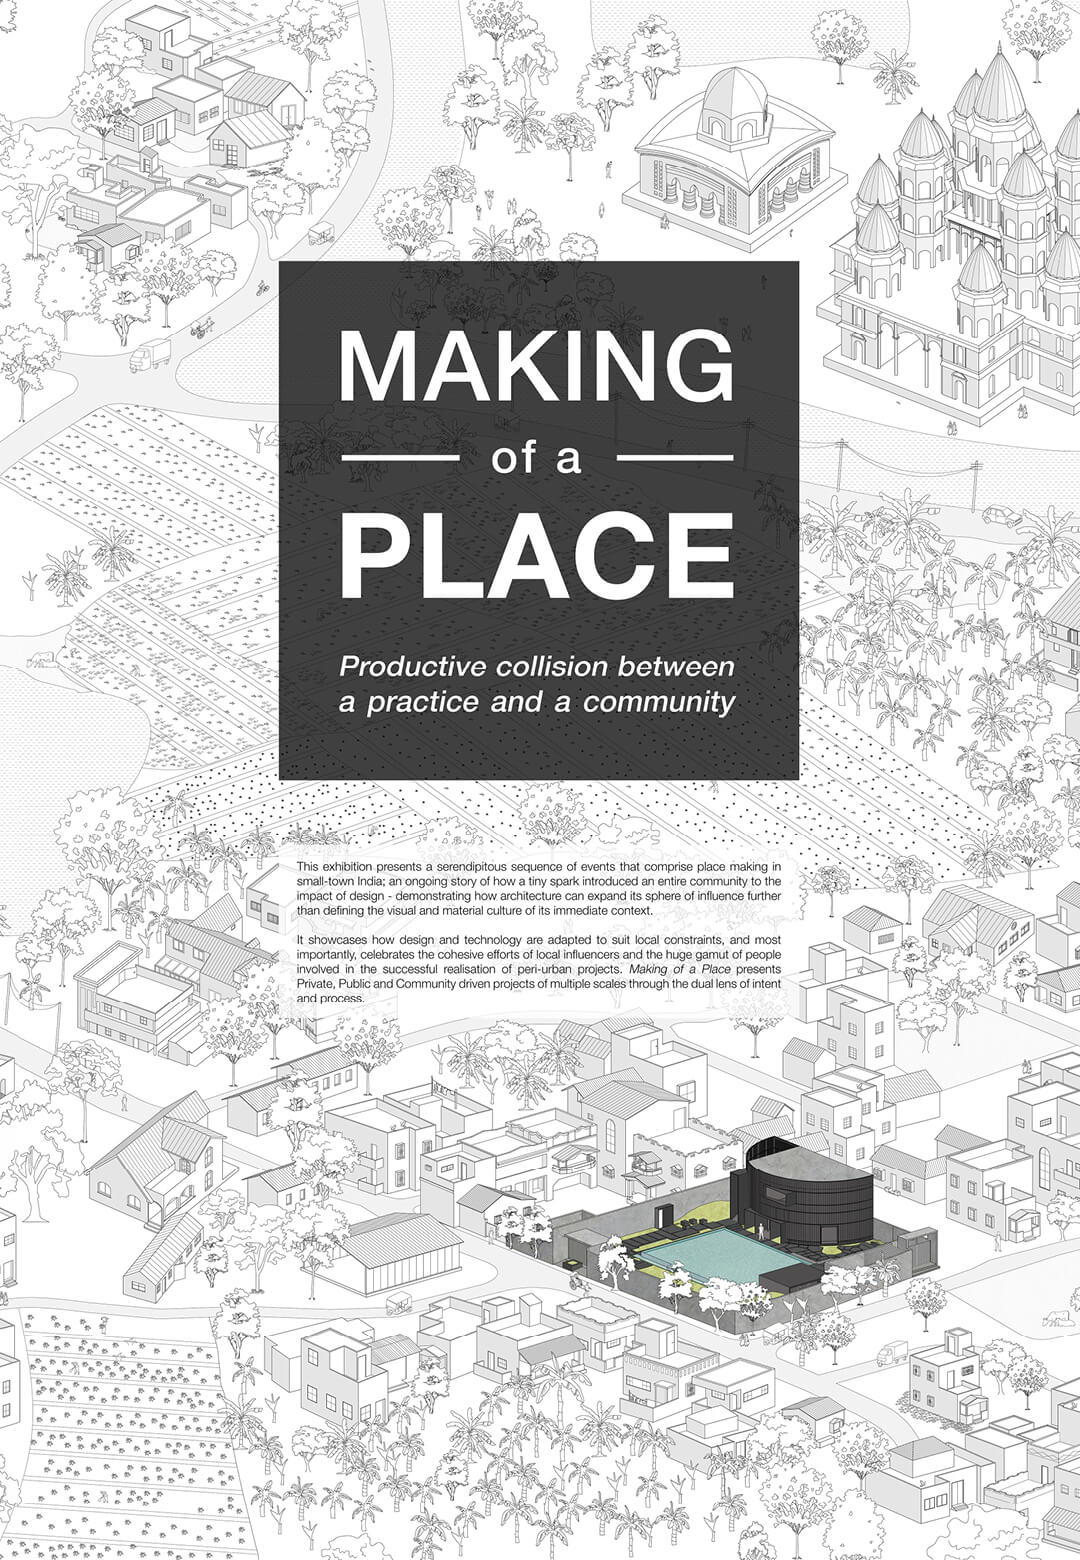 Making of a Place exhibition by Abin Design Studio that took place at the Lilavati Lalbhai Library, CEPT University, Ahmedabad, India shows all the projects | Making of a Place | Abin Design Studio | STIRworld